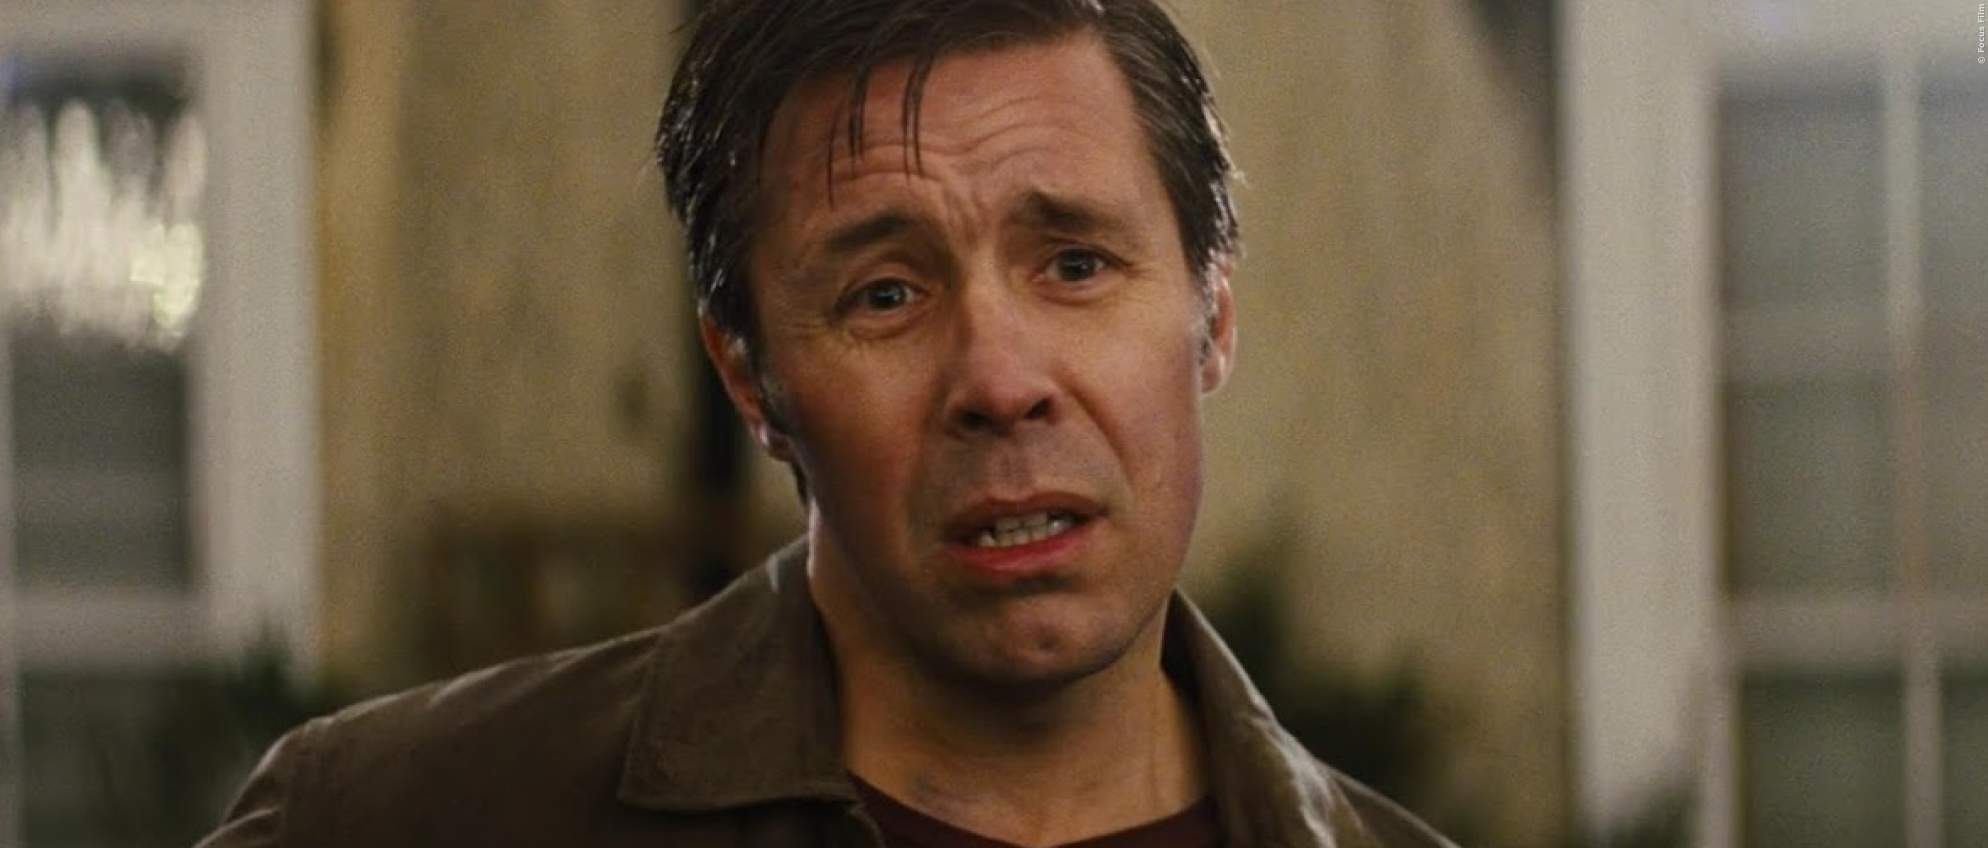 Paddy Considine in The World's End